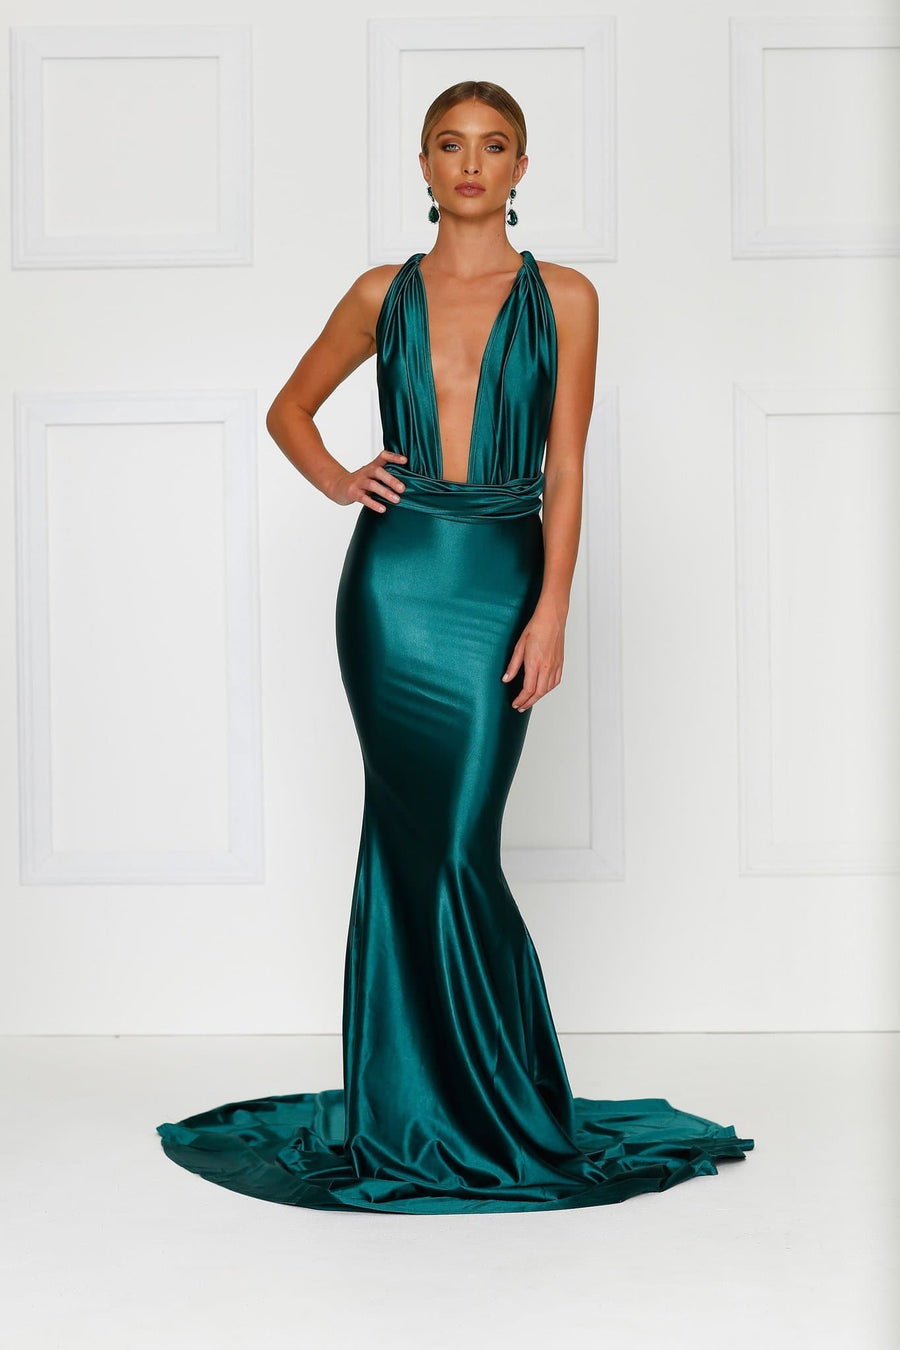 Emerald Multiway satin wrap dress by Alamour the Label